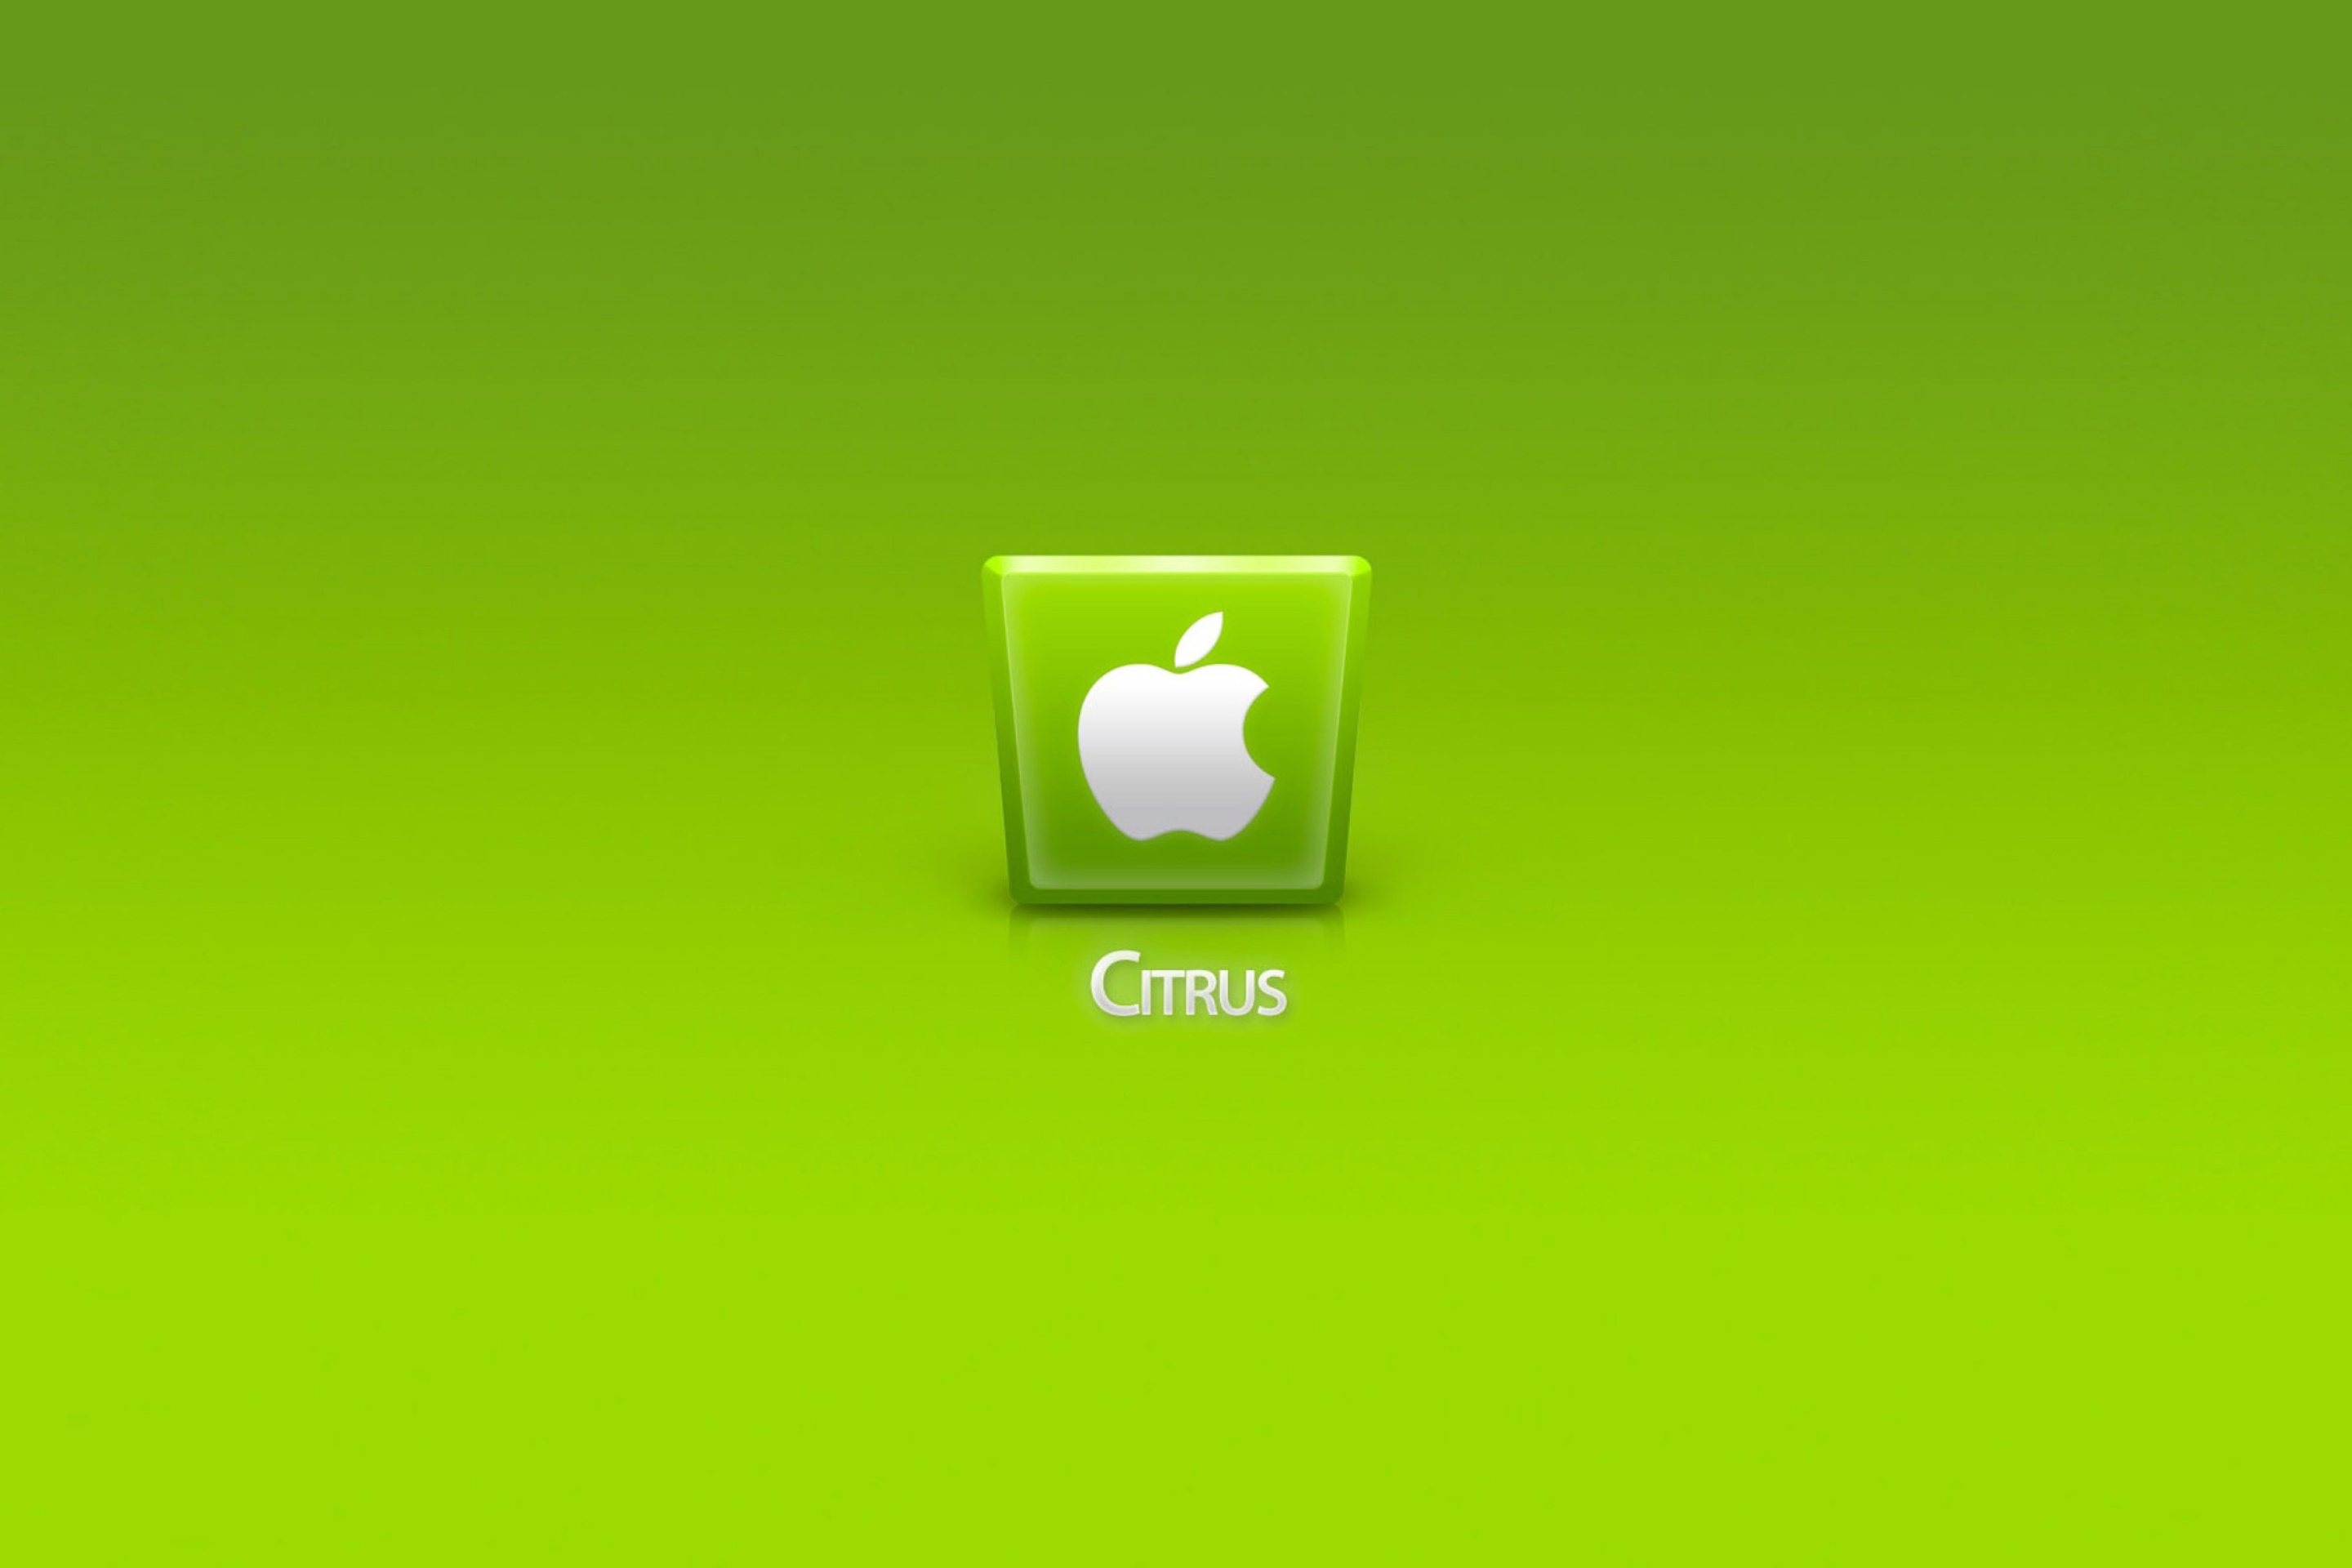 Fondo de pantalla Apple Citrus 2880x1920